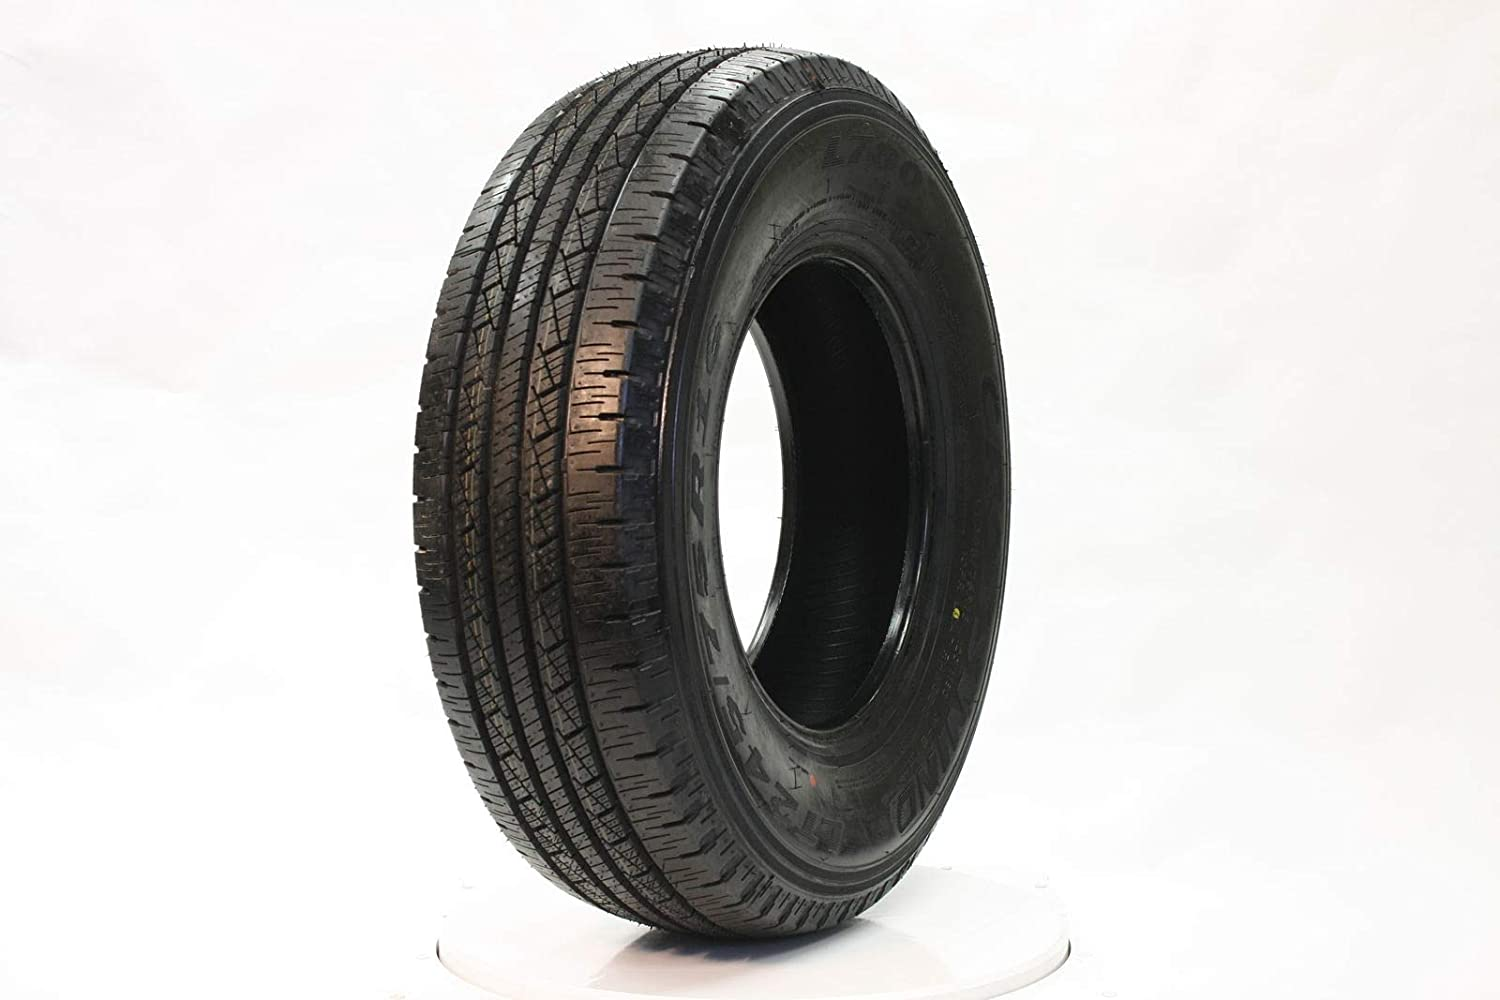 Crosswind LTR HWY (L780) All-Season Radial Tire-225/75R16 115Q LTR2072LL